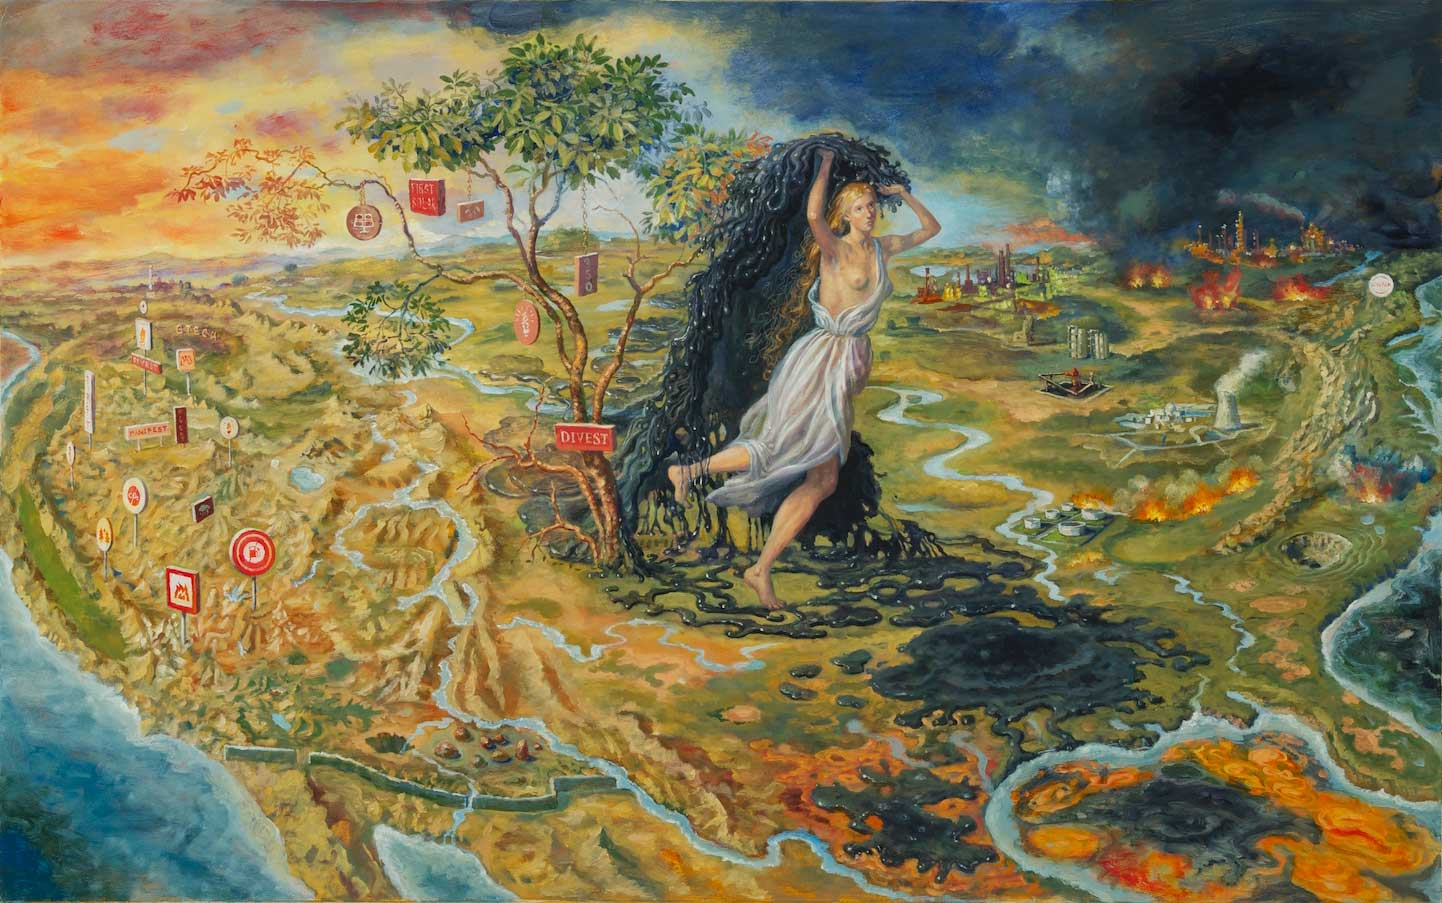 painting of woman carrying oil in fiery landscape